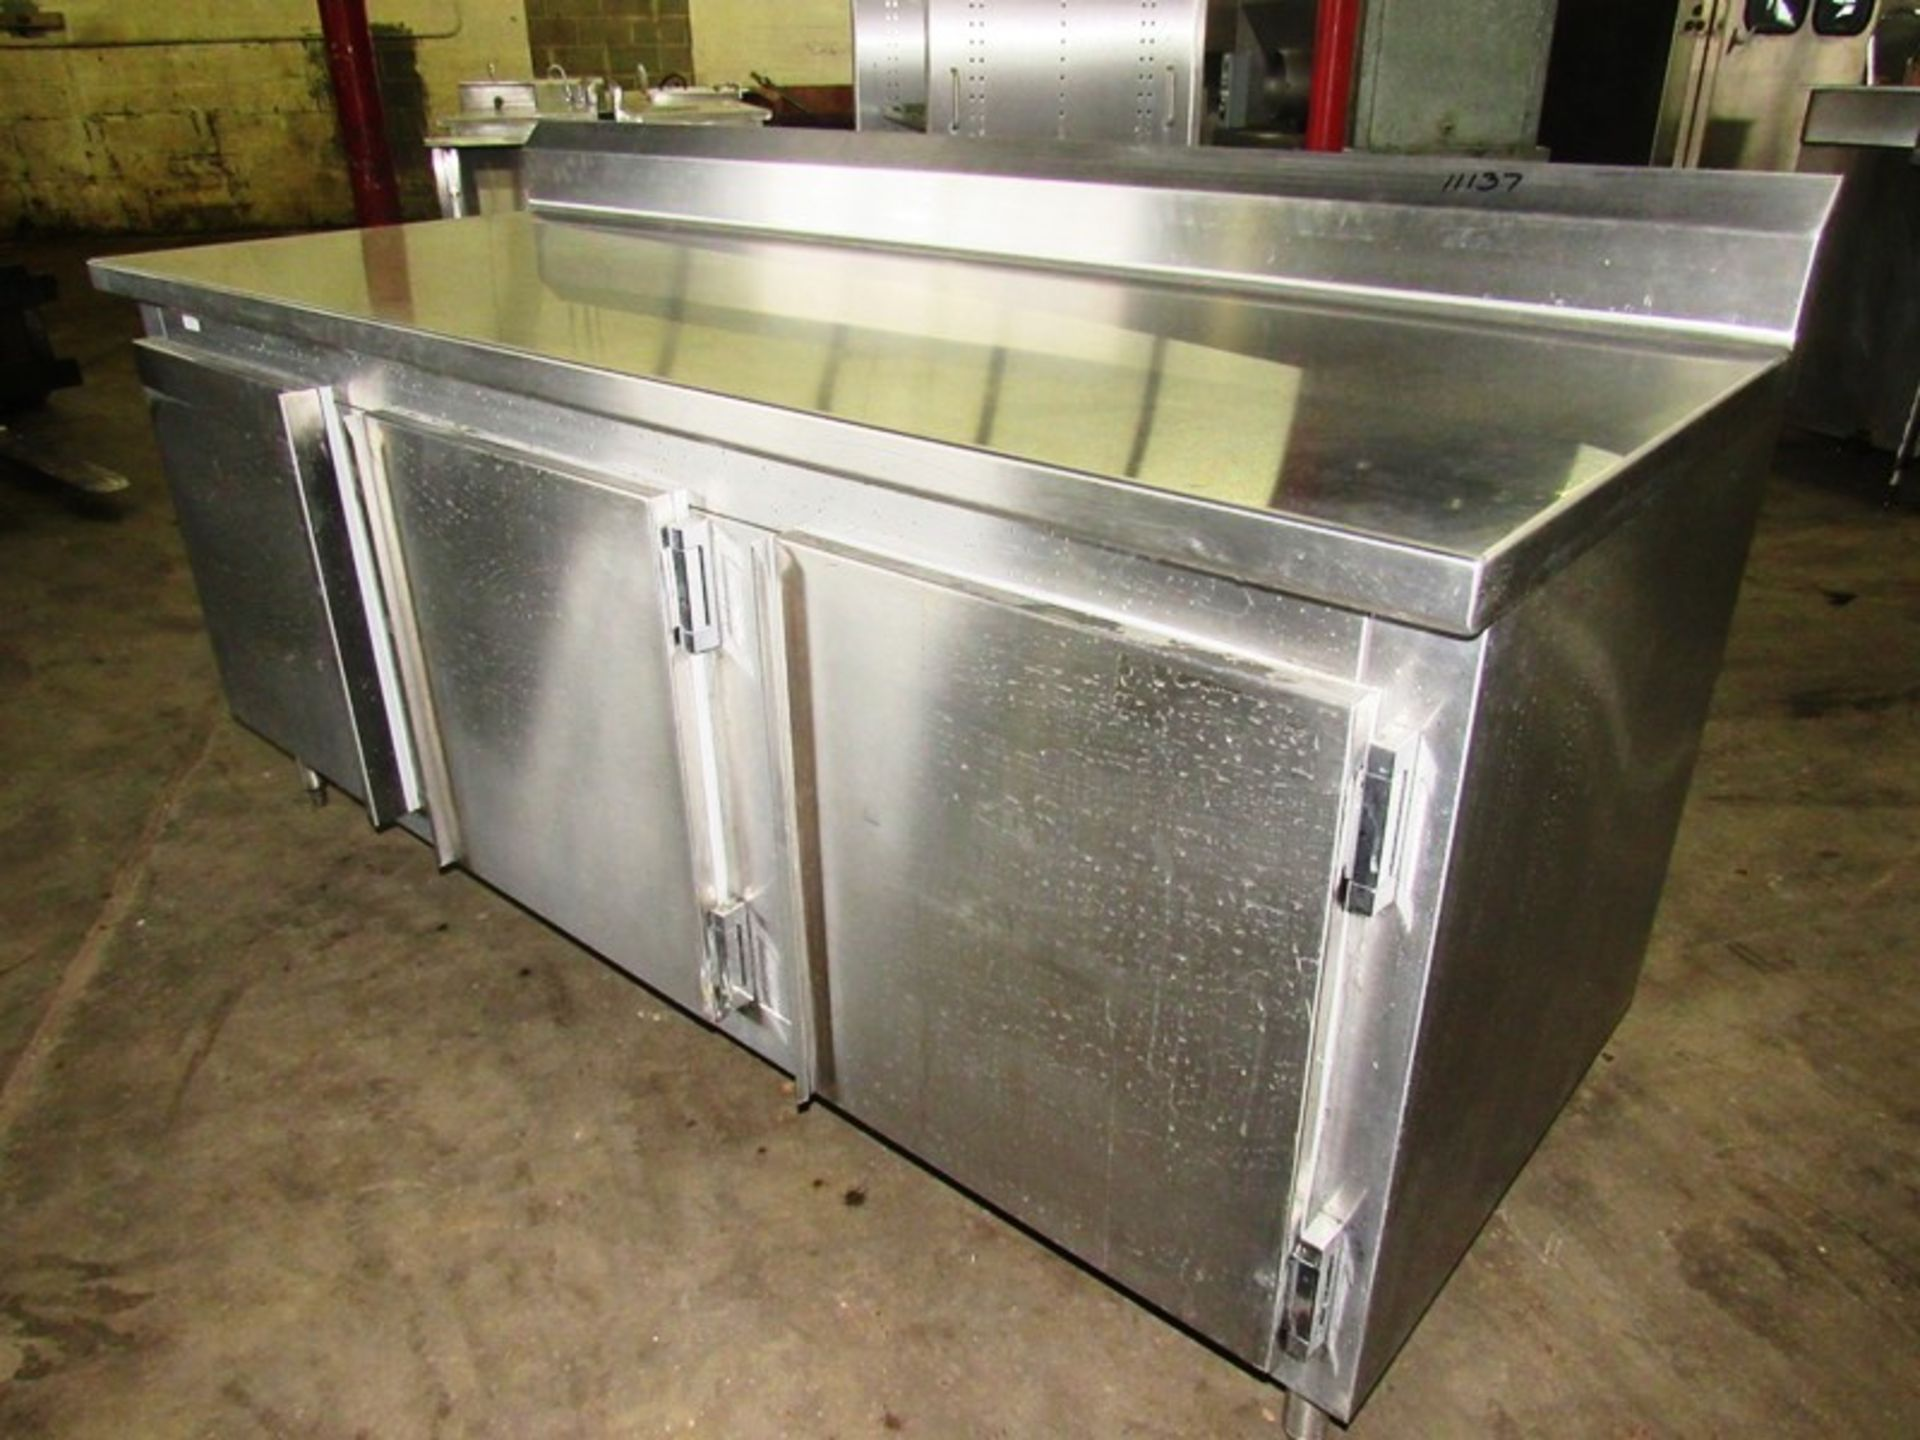 "Nationwide Fabrication Mdl. 3457-50 Stainless Steel Refrigerated Prep Table, 3 doors, 7 shelves, 80"" - Image 2 of 7"